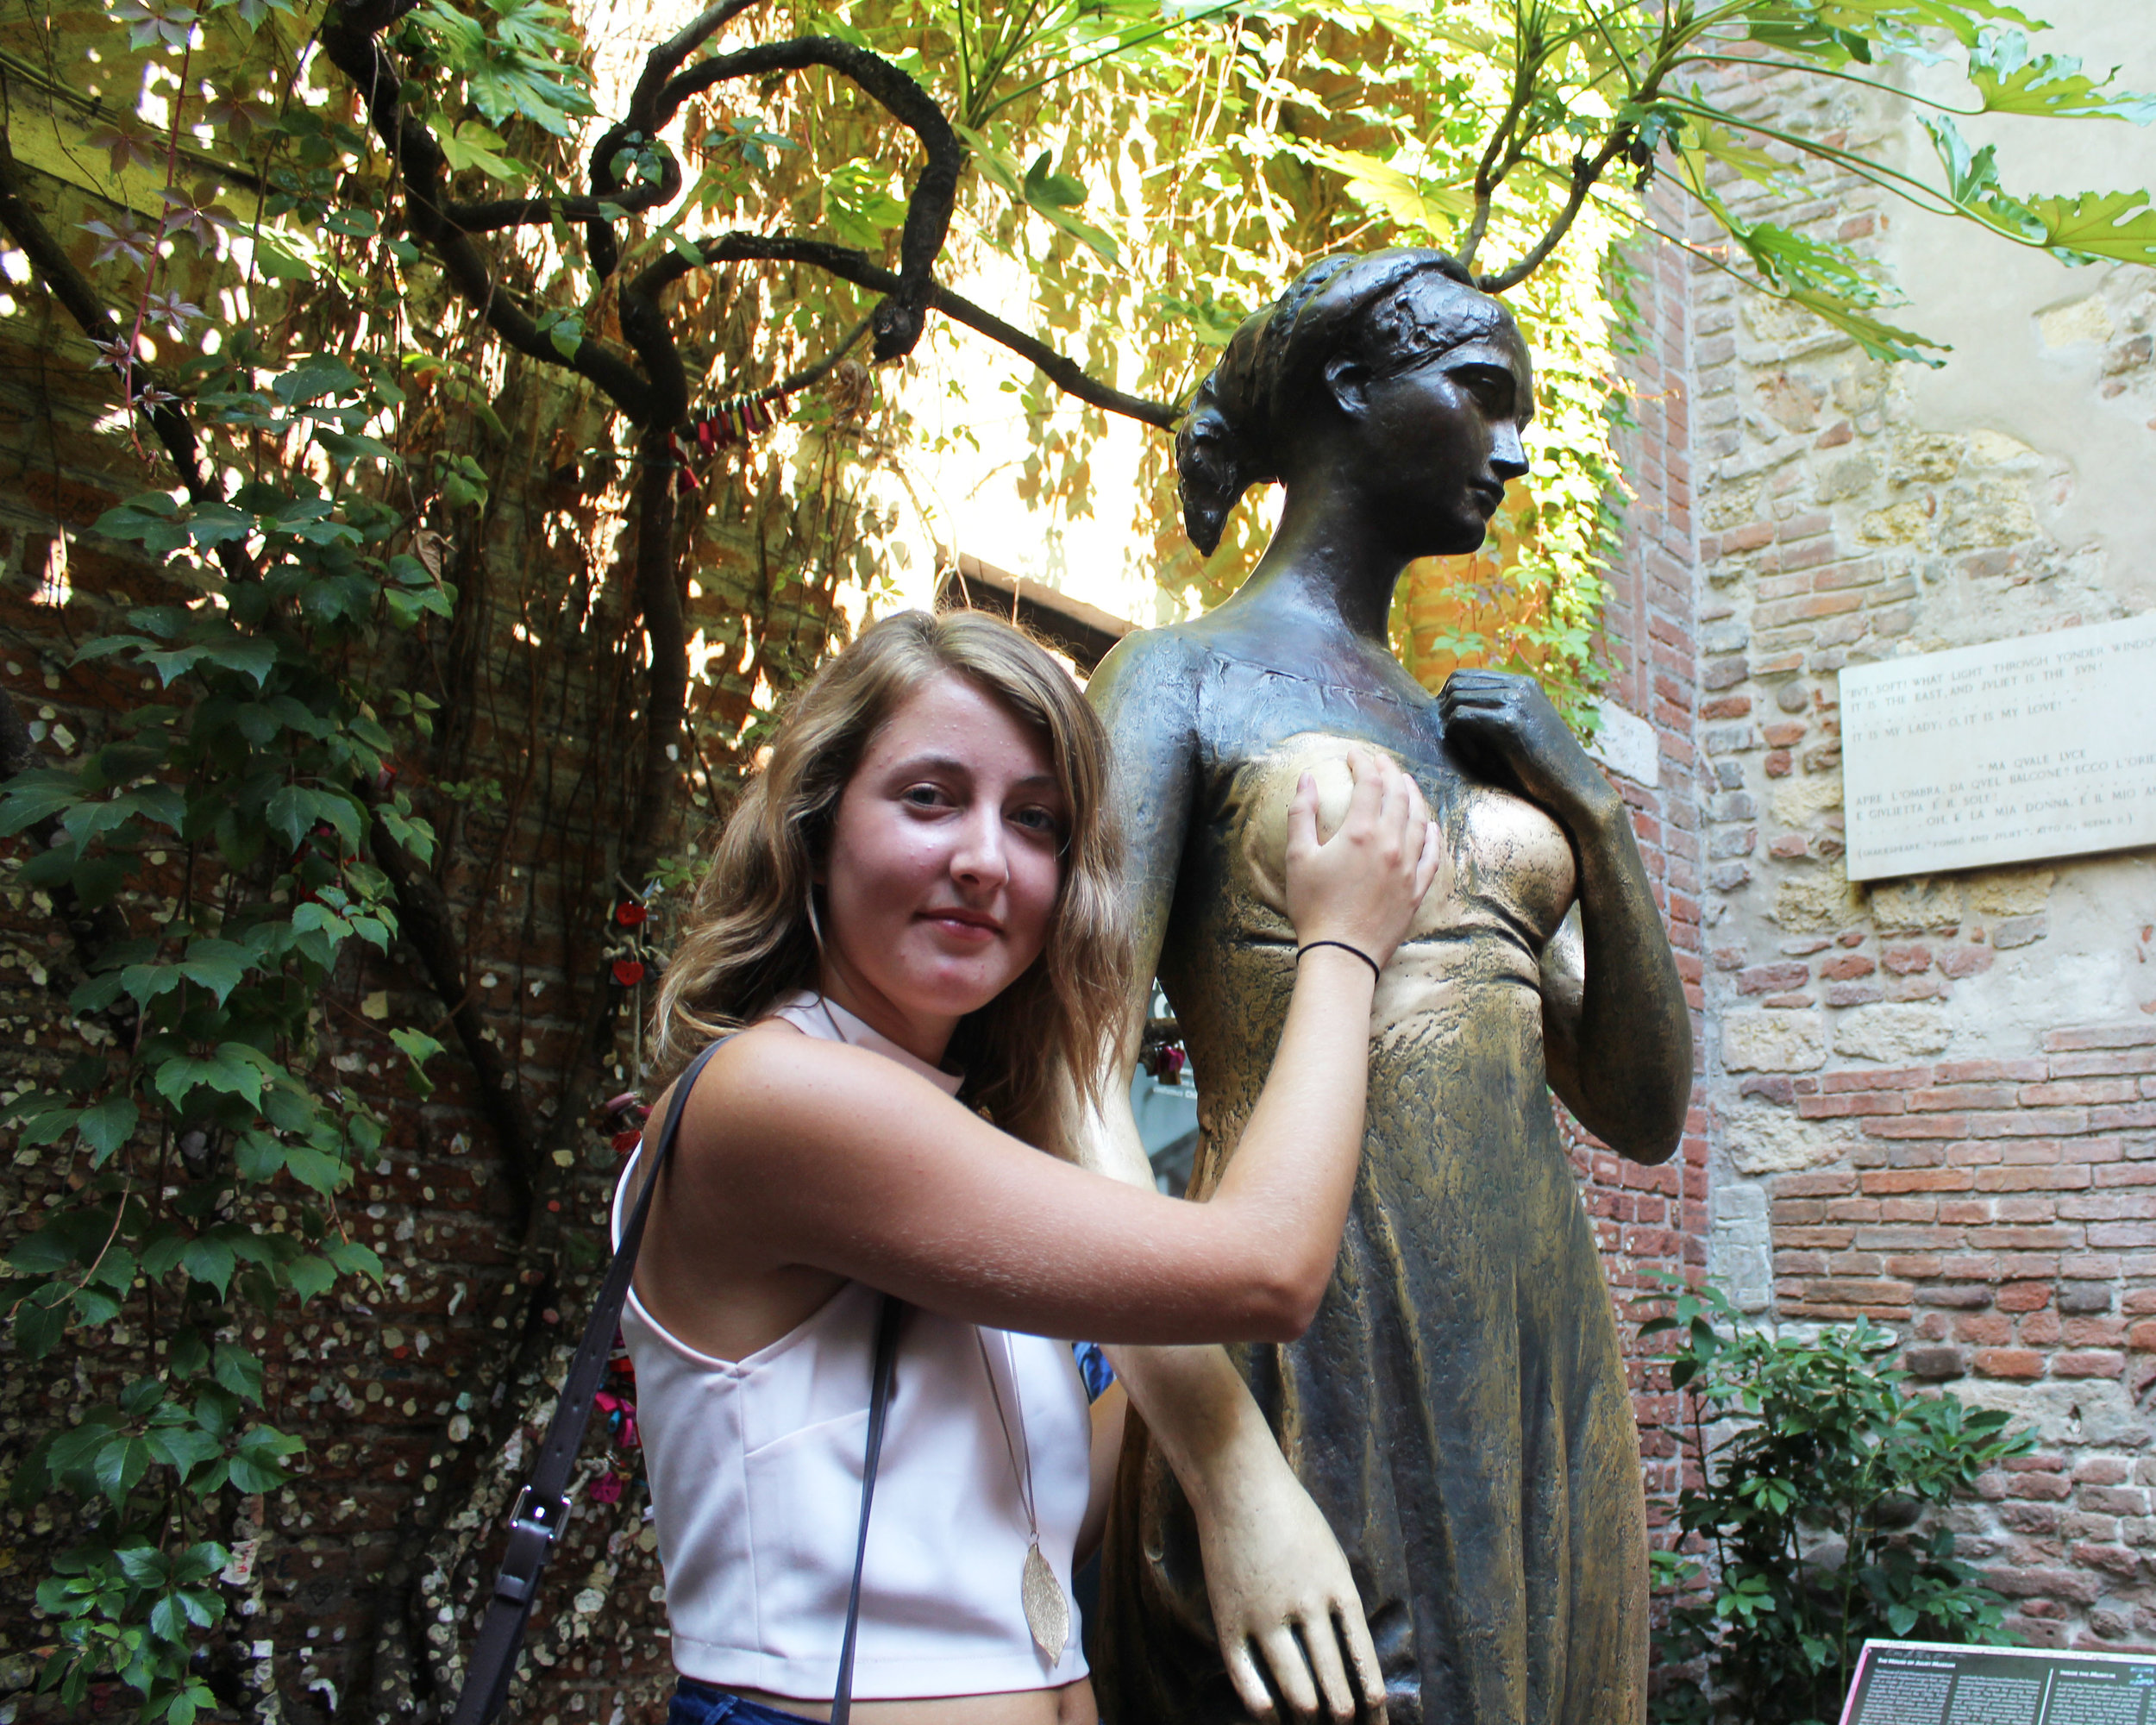 Please dont mind my face... I had a million tourists staring my way (also found it random holding a breast) haha.